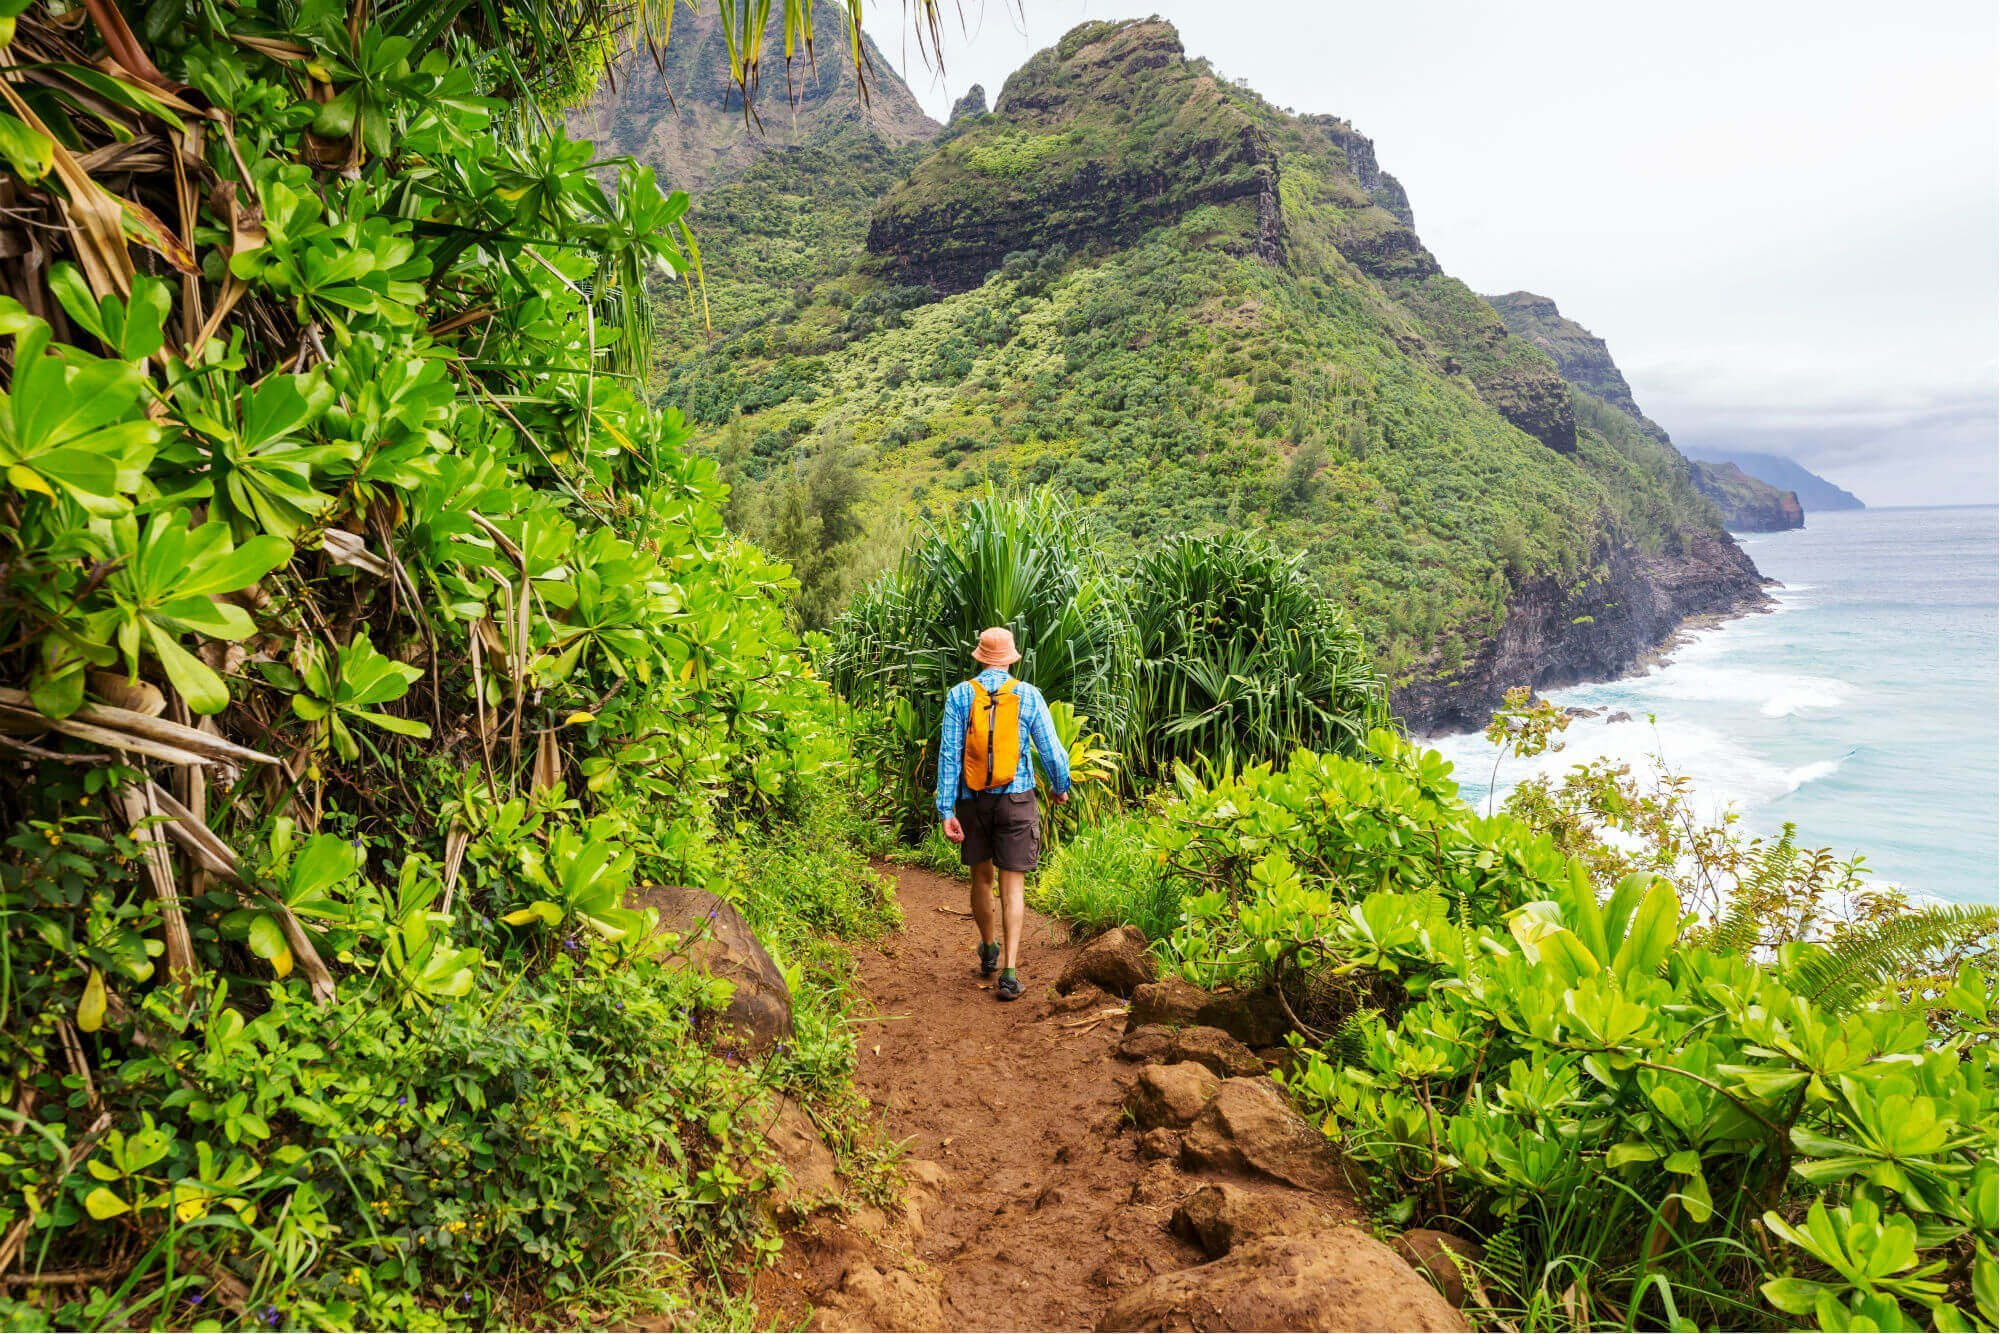 Man hiking in Kauai